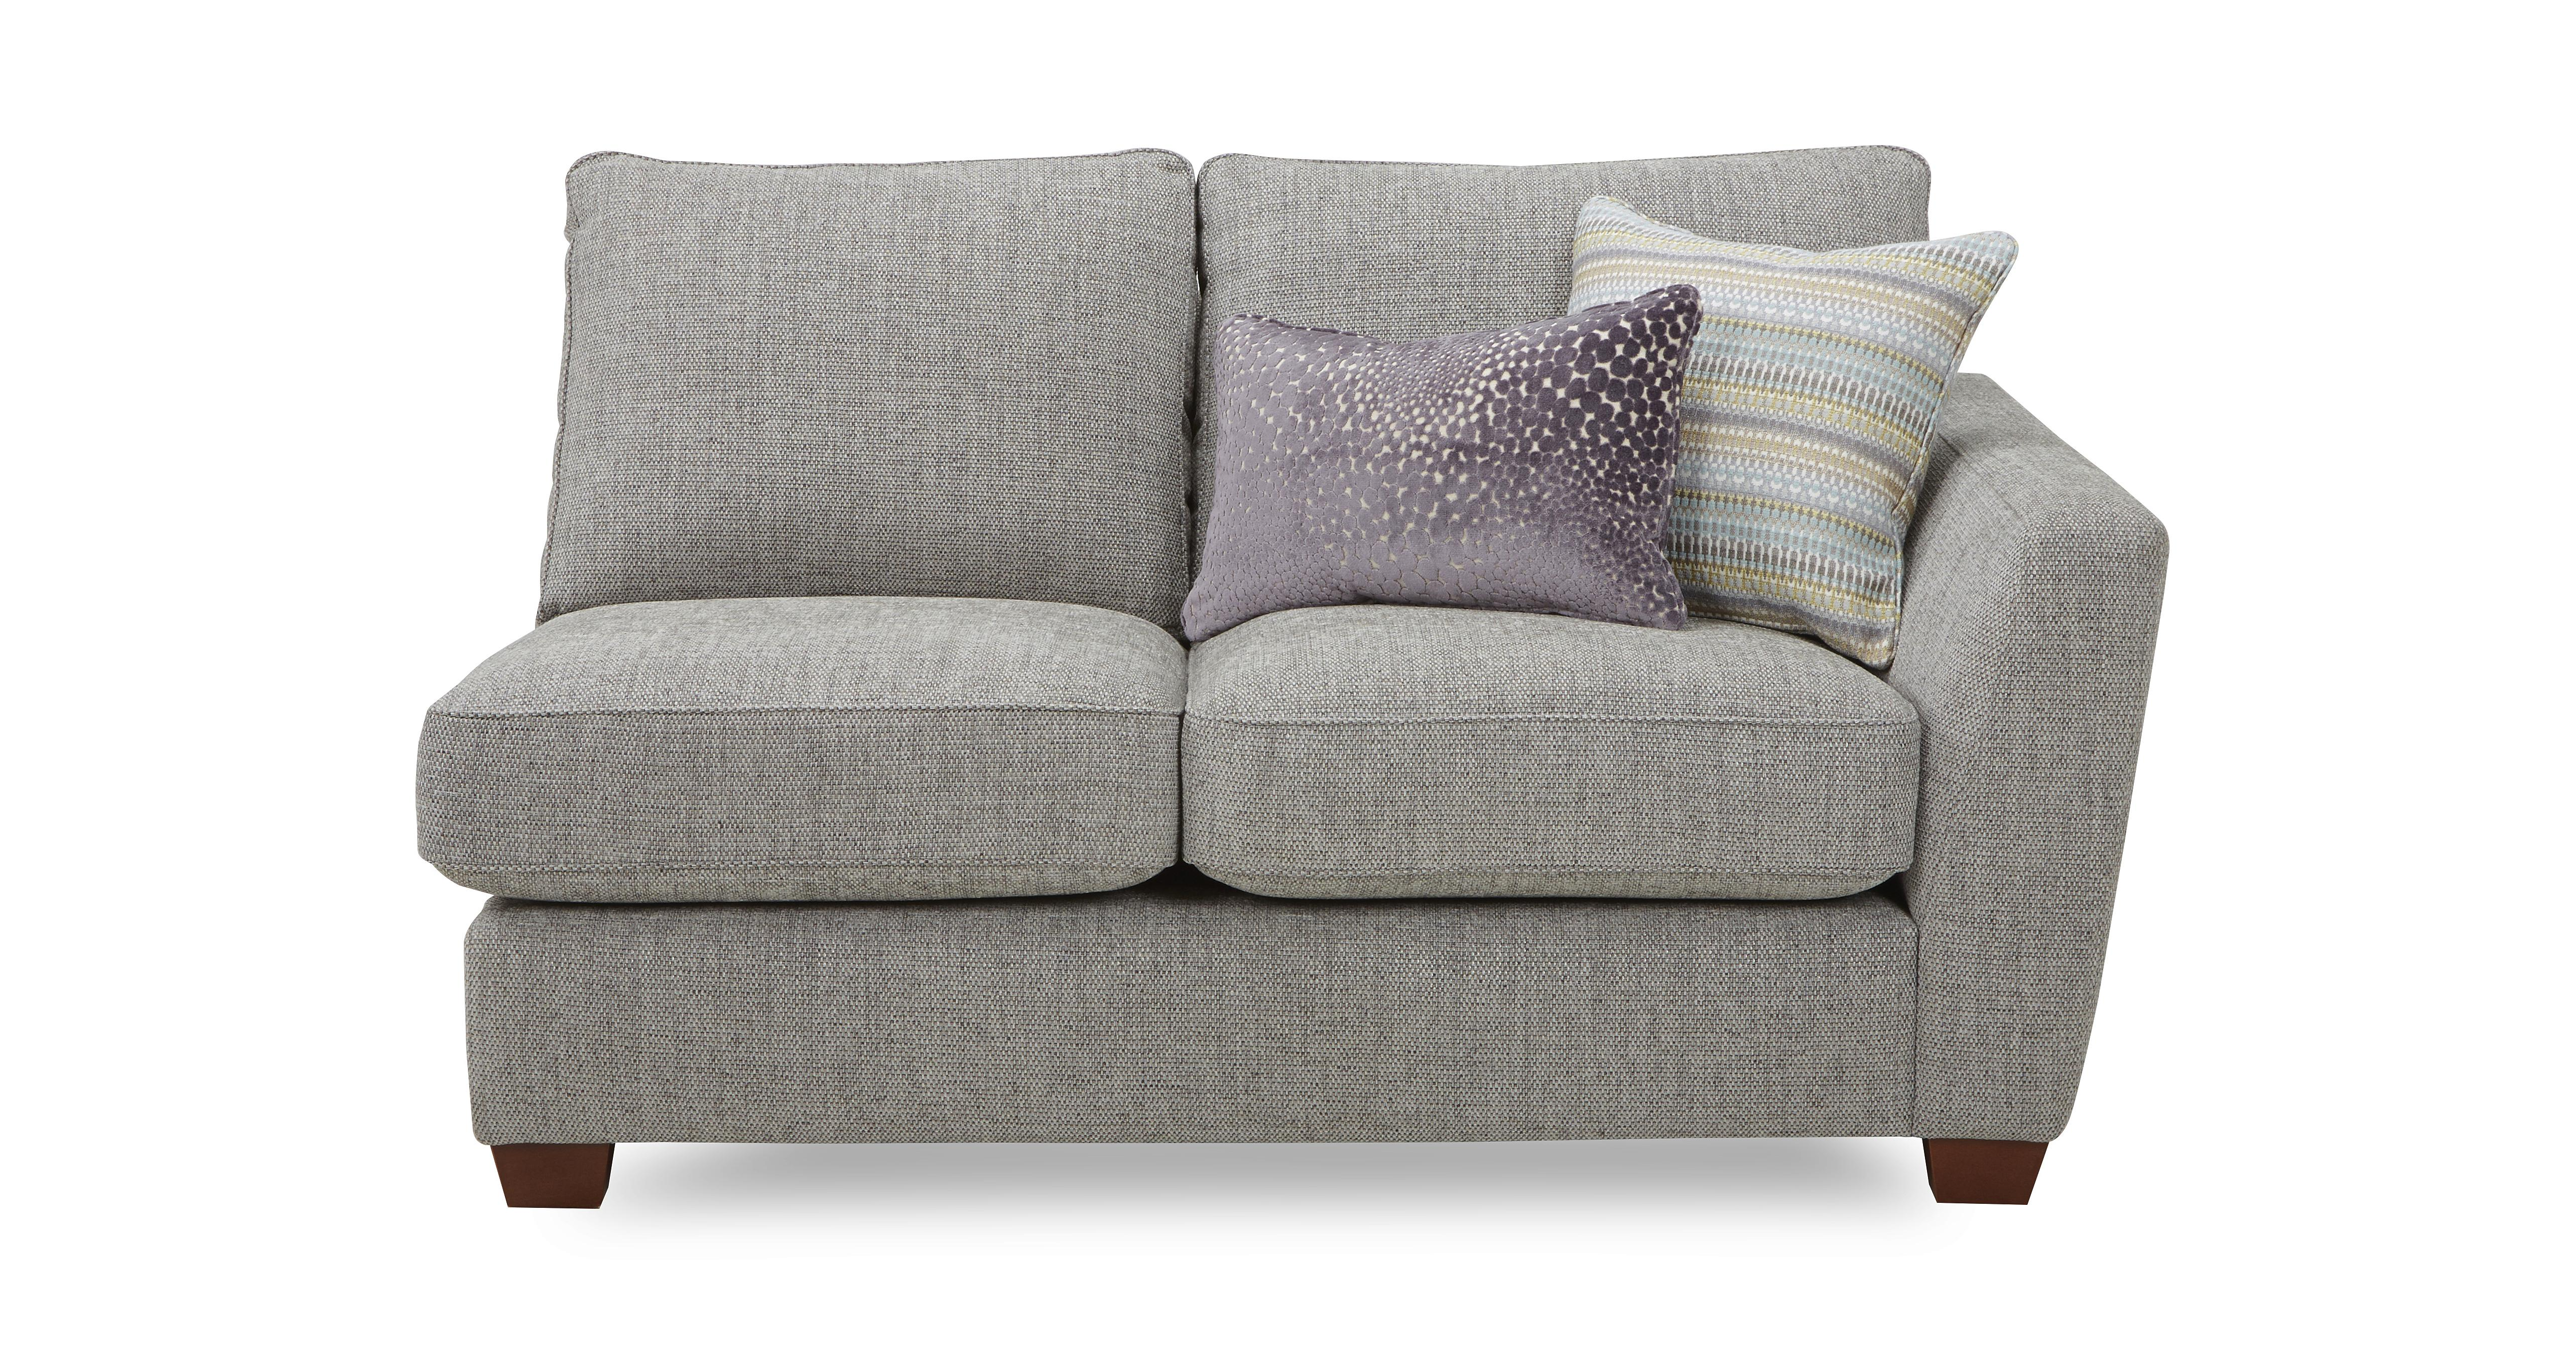 dfs sophia sofa reviews bernhardt leather quality right arm facing 2 seater unit